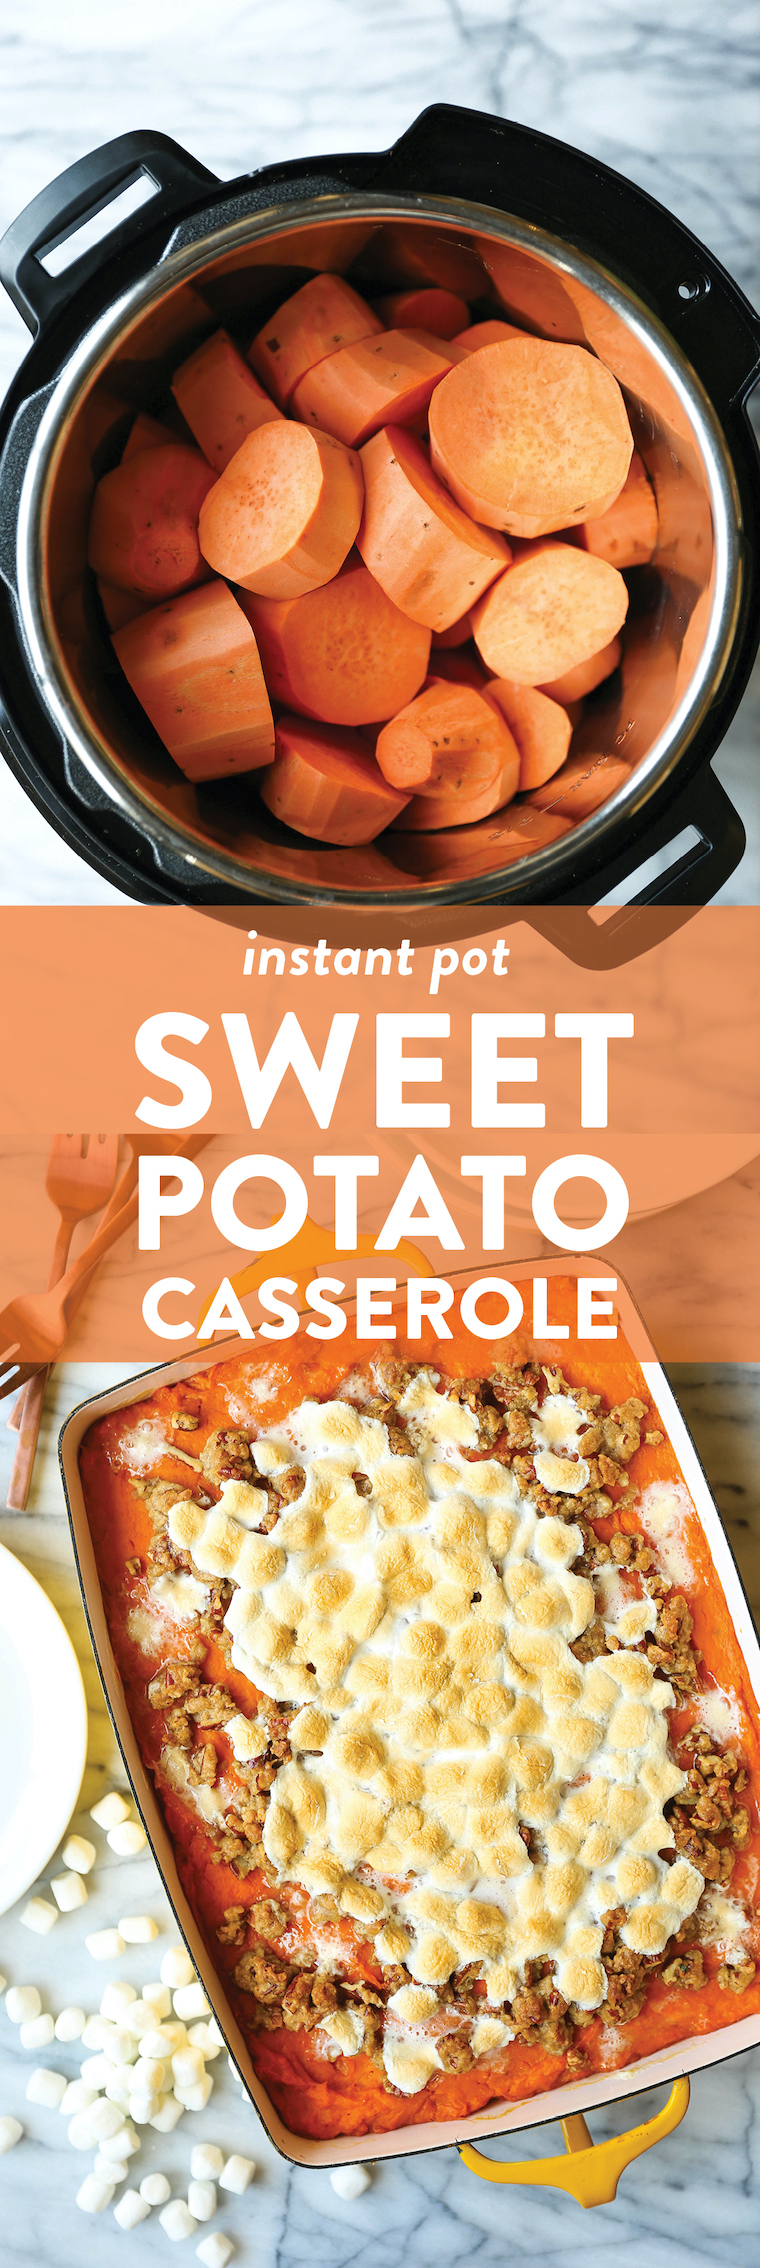 Instant Pot Sweet Potato Casserole - You can easily make this ahead of time; bake when ready to serve with toasted marshmallows + a pecan streusel topping!